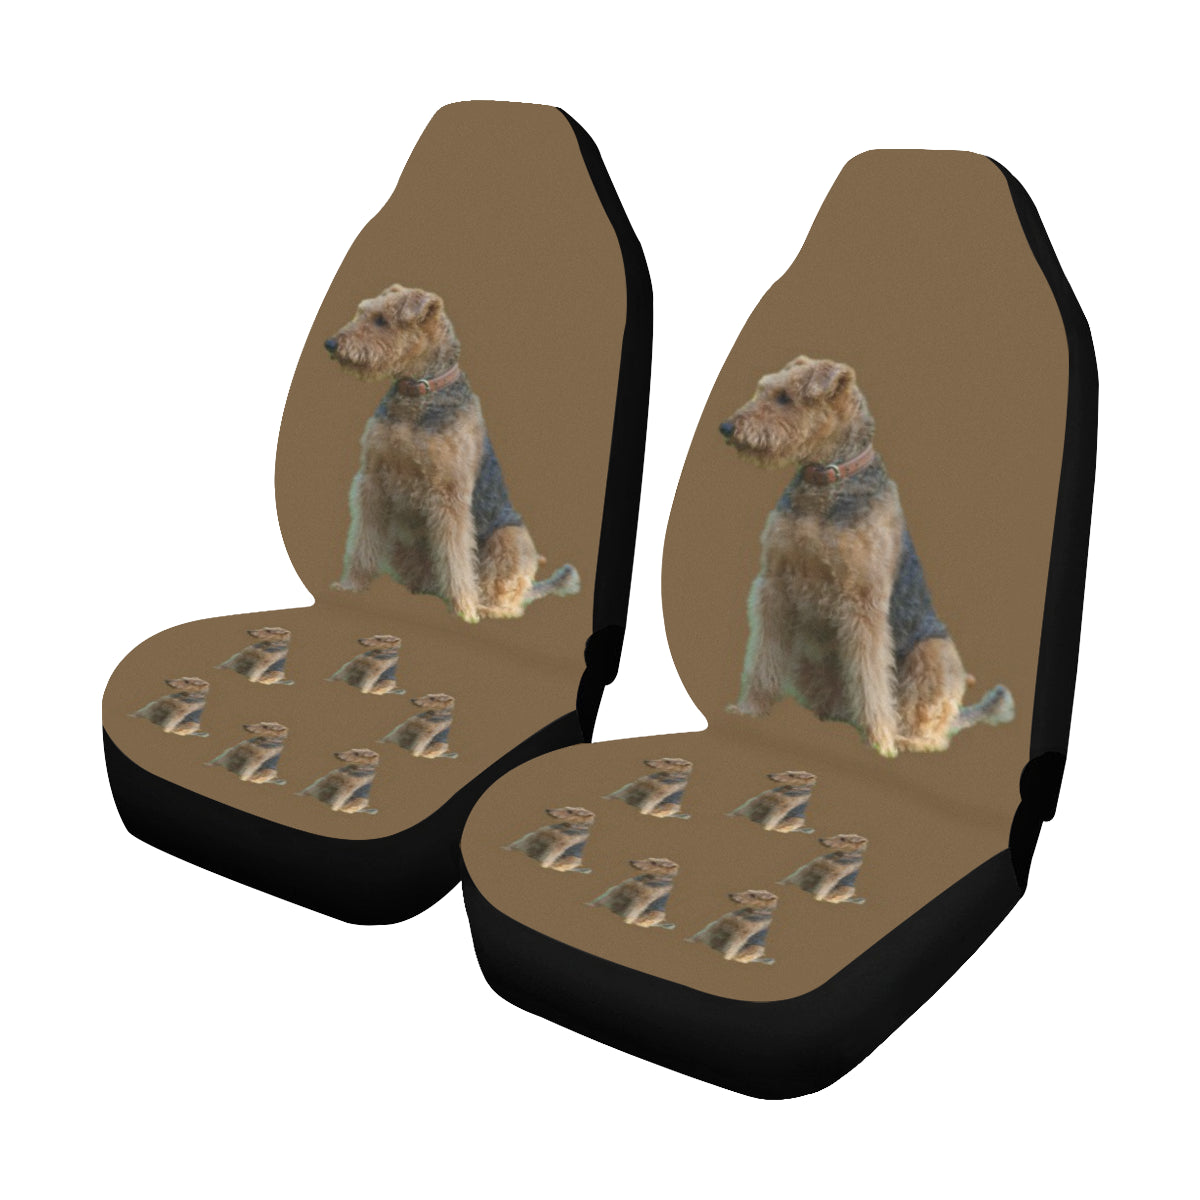 Airedale Terrier Car Seat Covers (Set of 2)